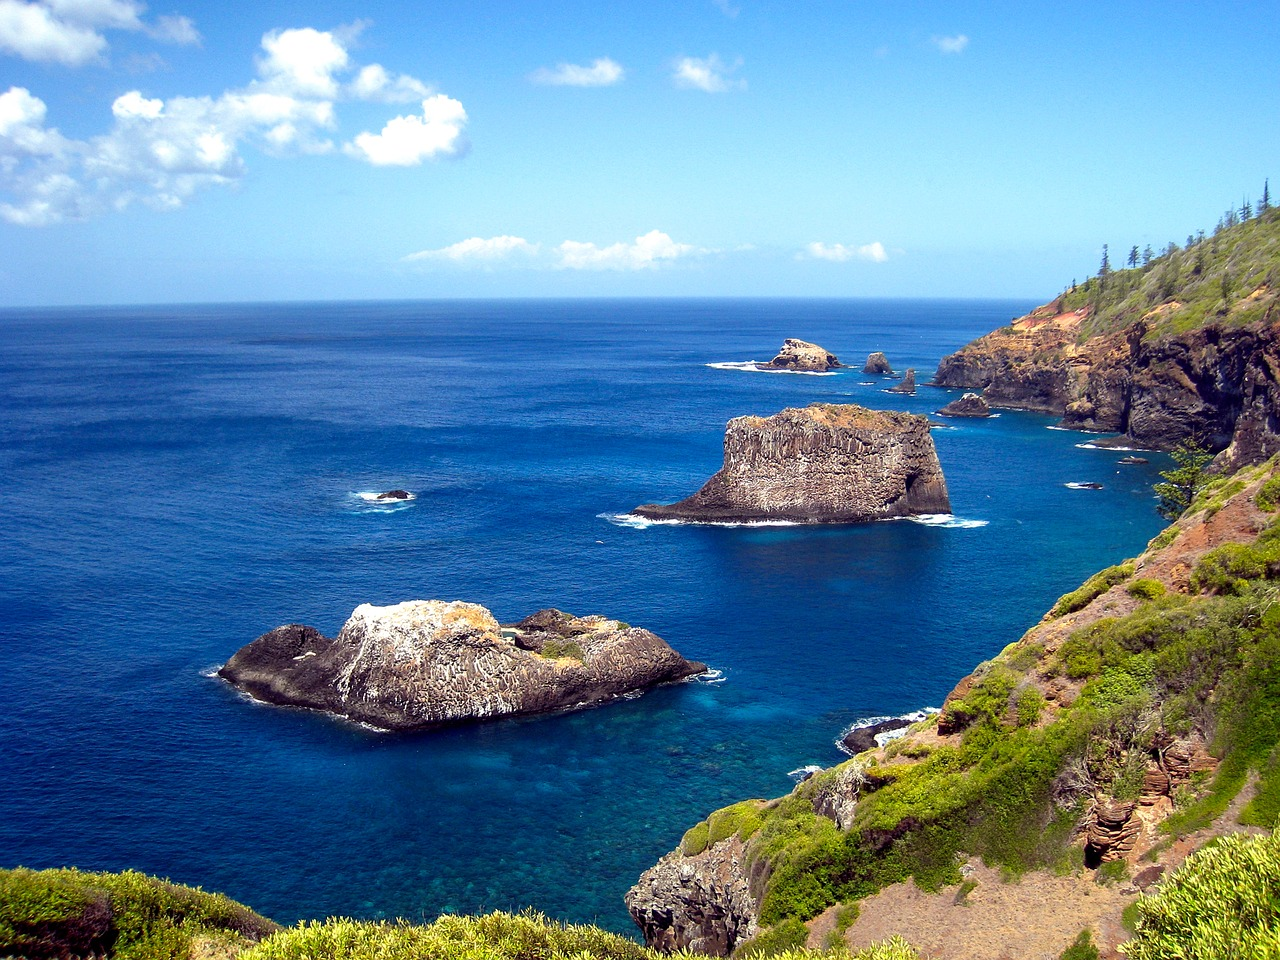 The majestic cliffs make Norfolk an island jewel.